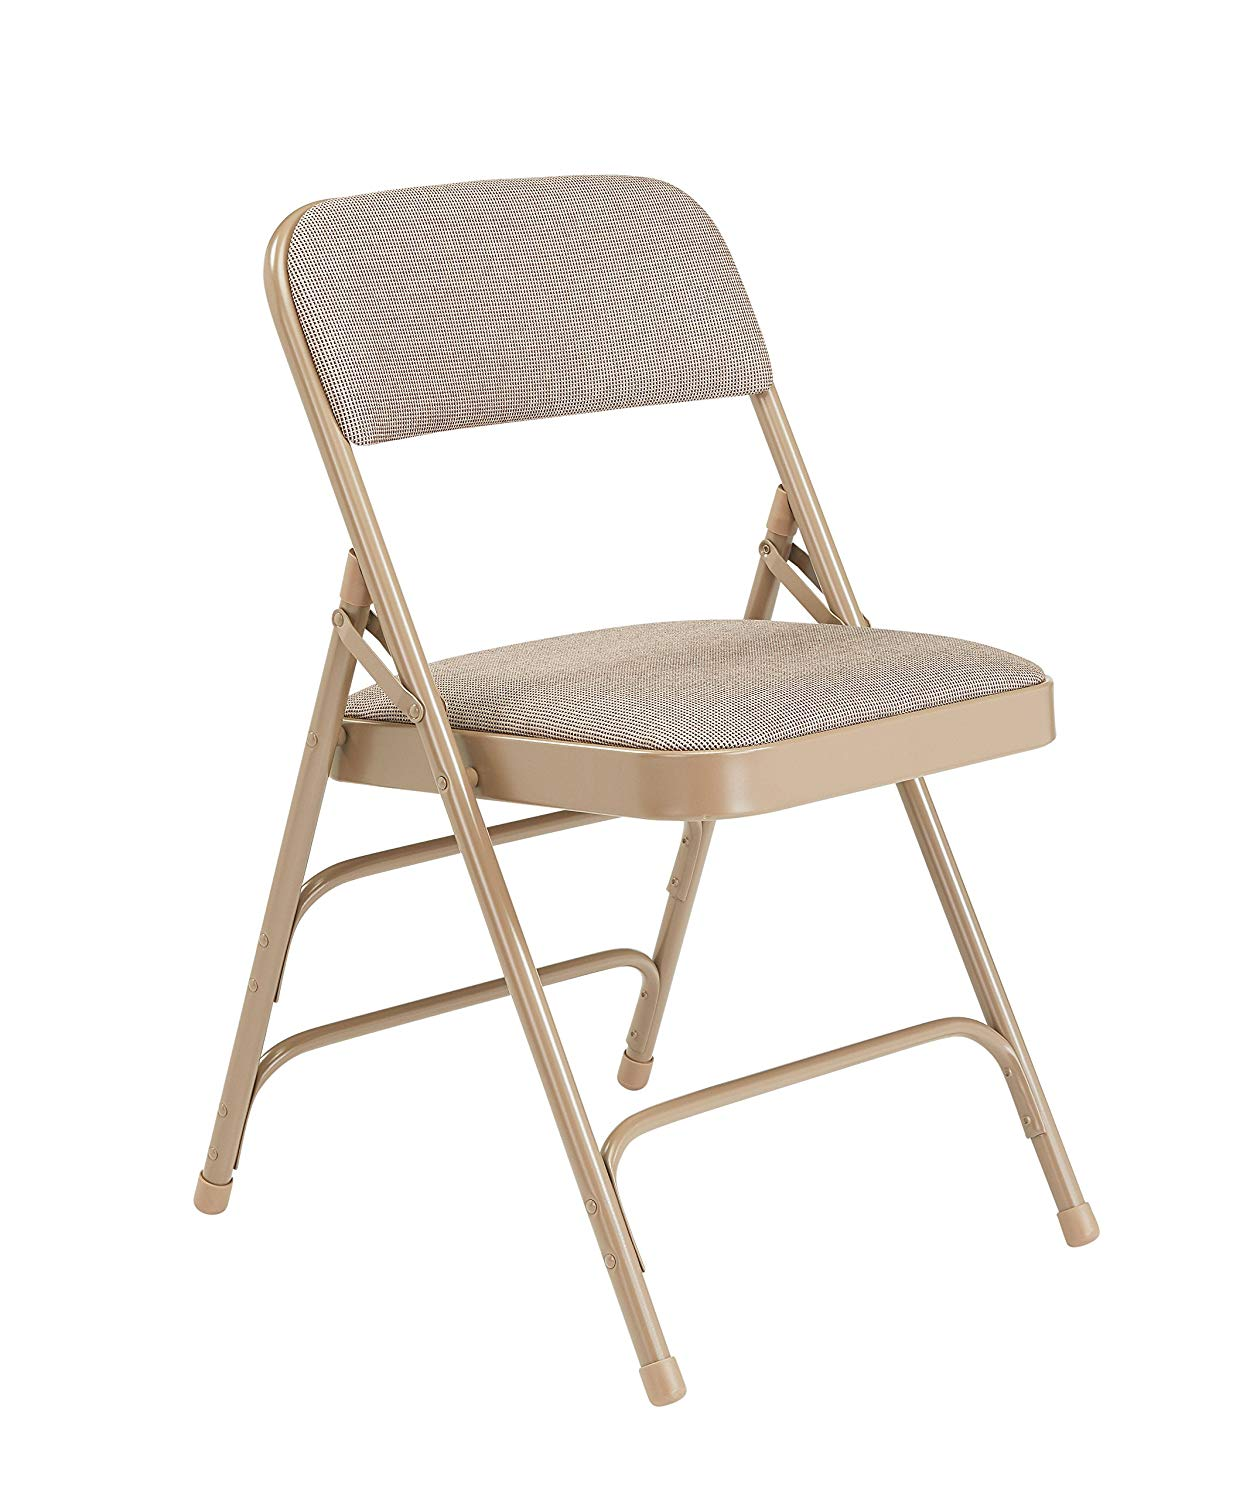 Folding Chairs, NPS 2300 Series Premium Fabric, Specify Color - 2301